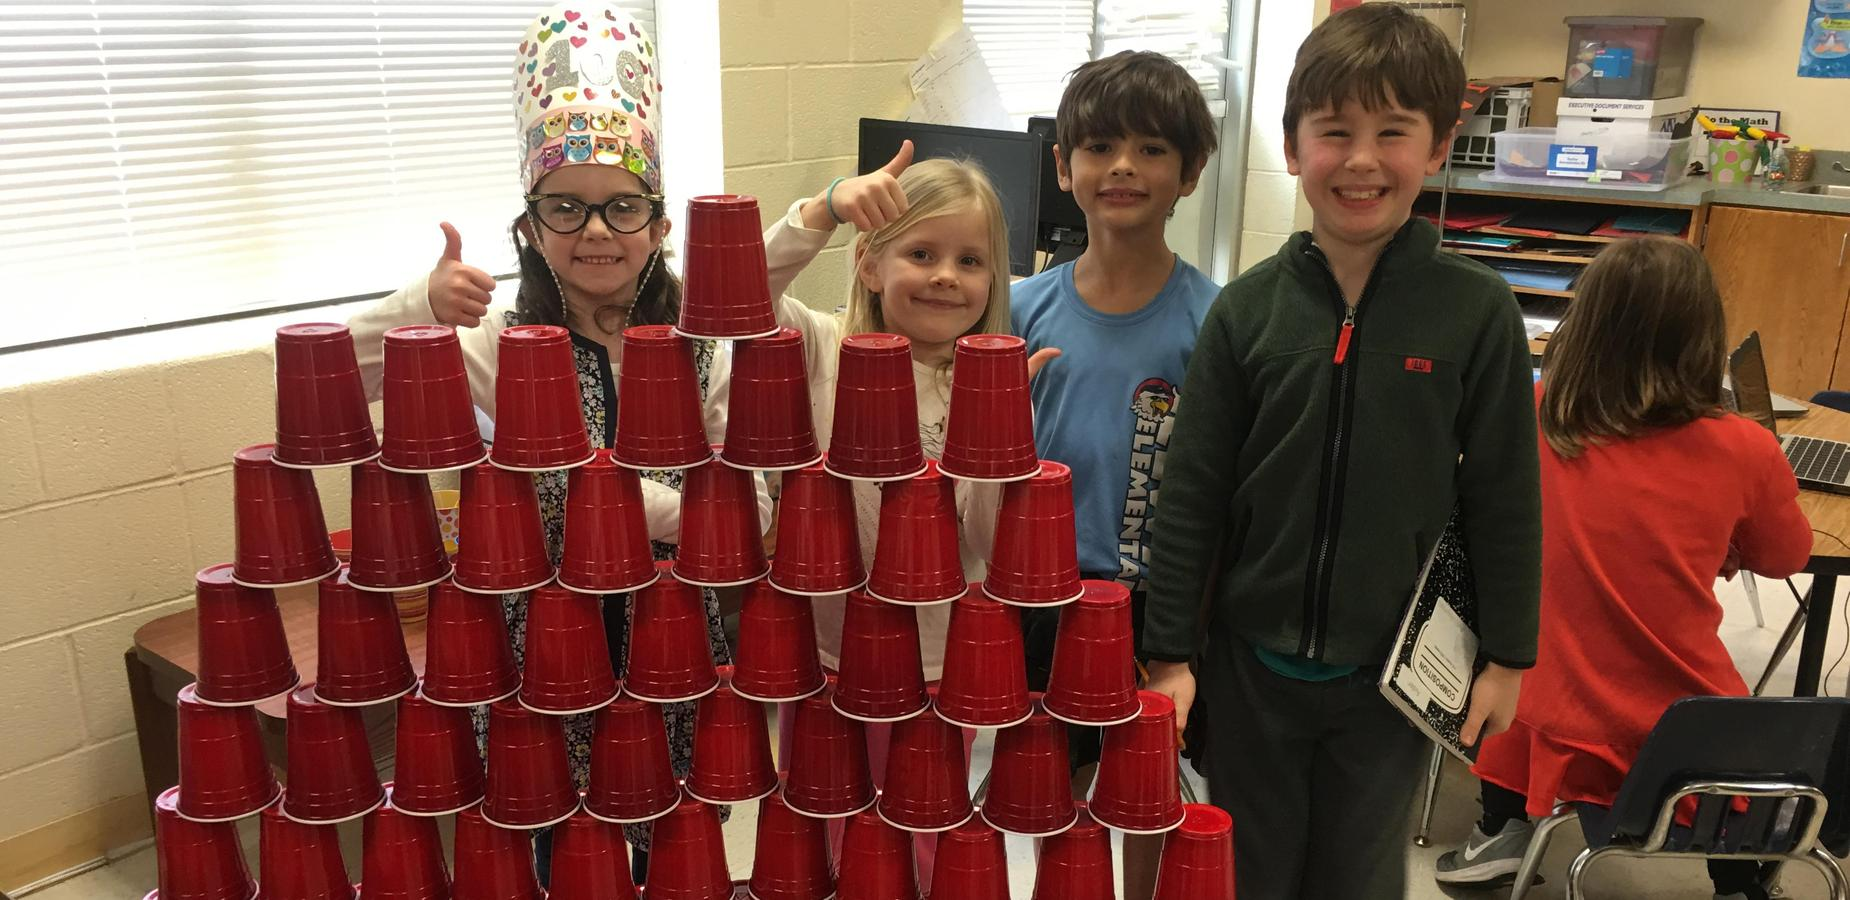 100th day student cup stacking activity